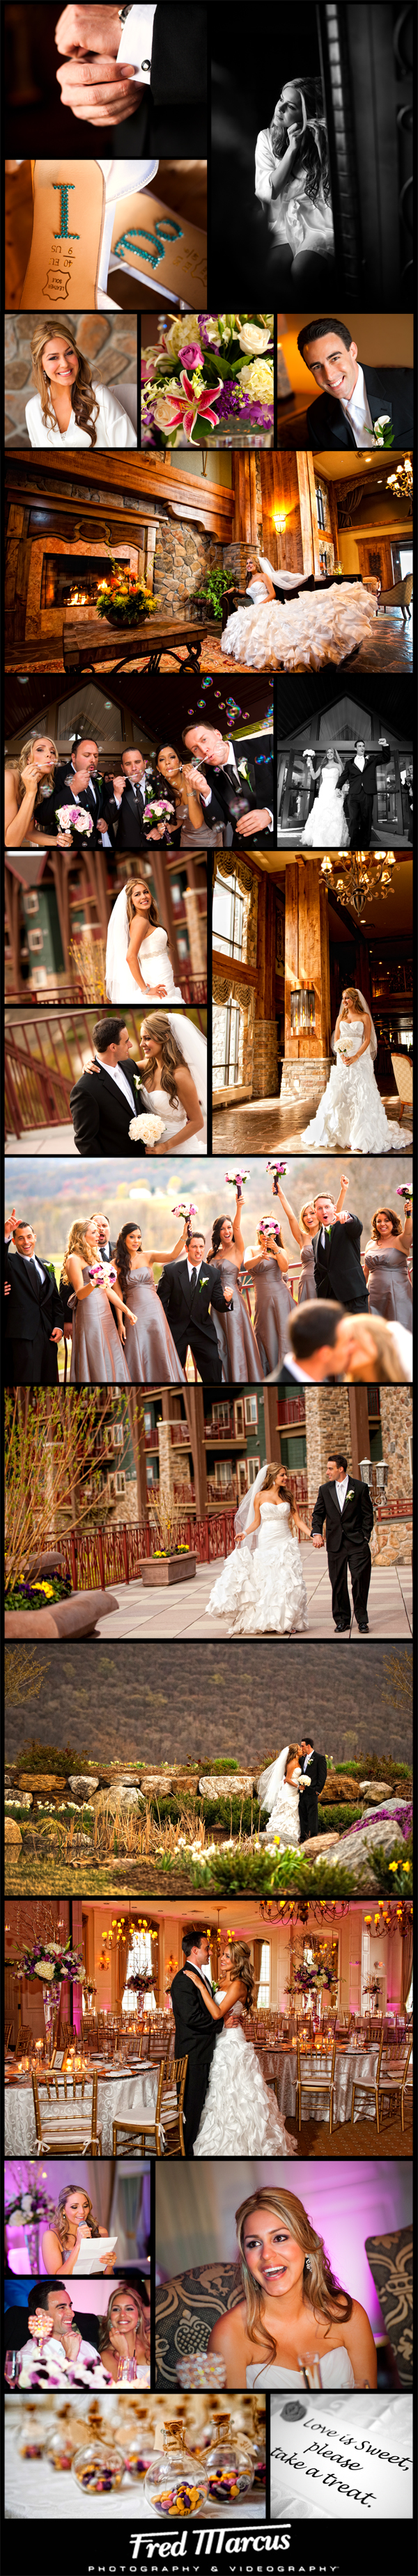 A Wedding at Crystal Springs Resort